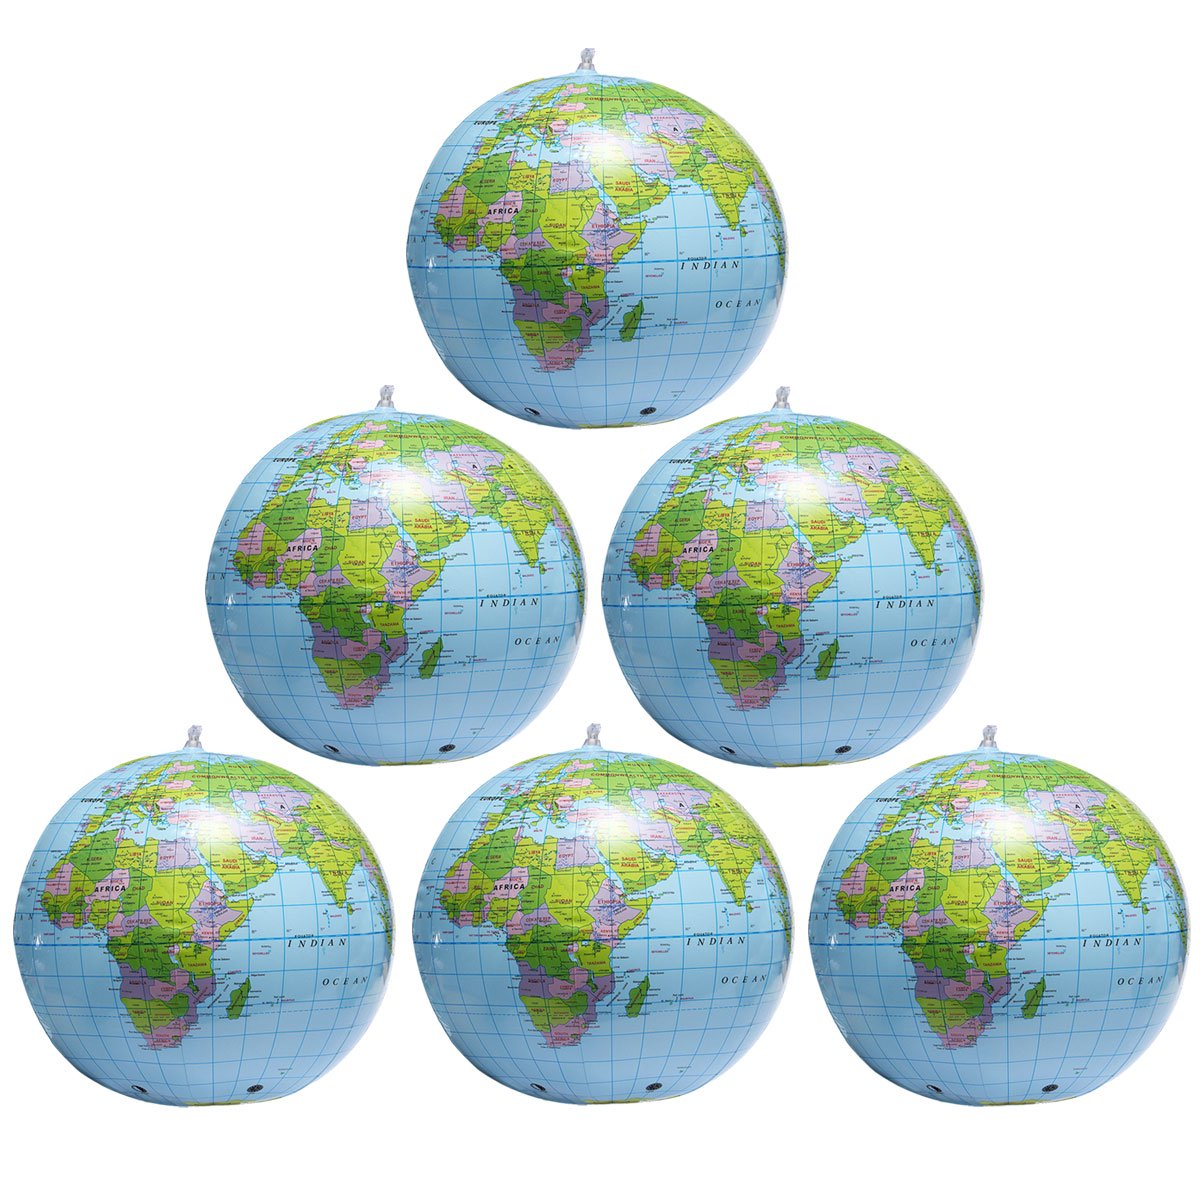 Map Of Canada On Globe.6x Inflatable World Earth Globe Map Beach Ball Geography Education Playing Toy Or Teaching 15 Inch